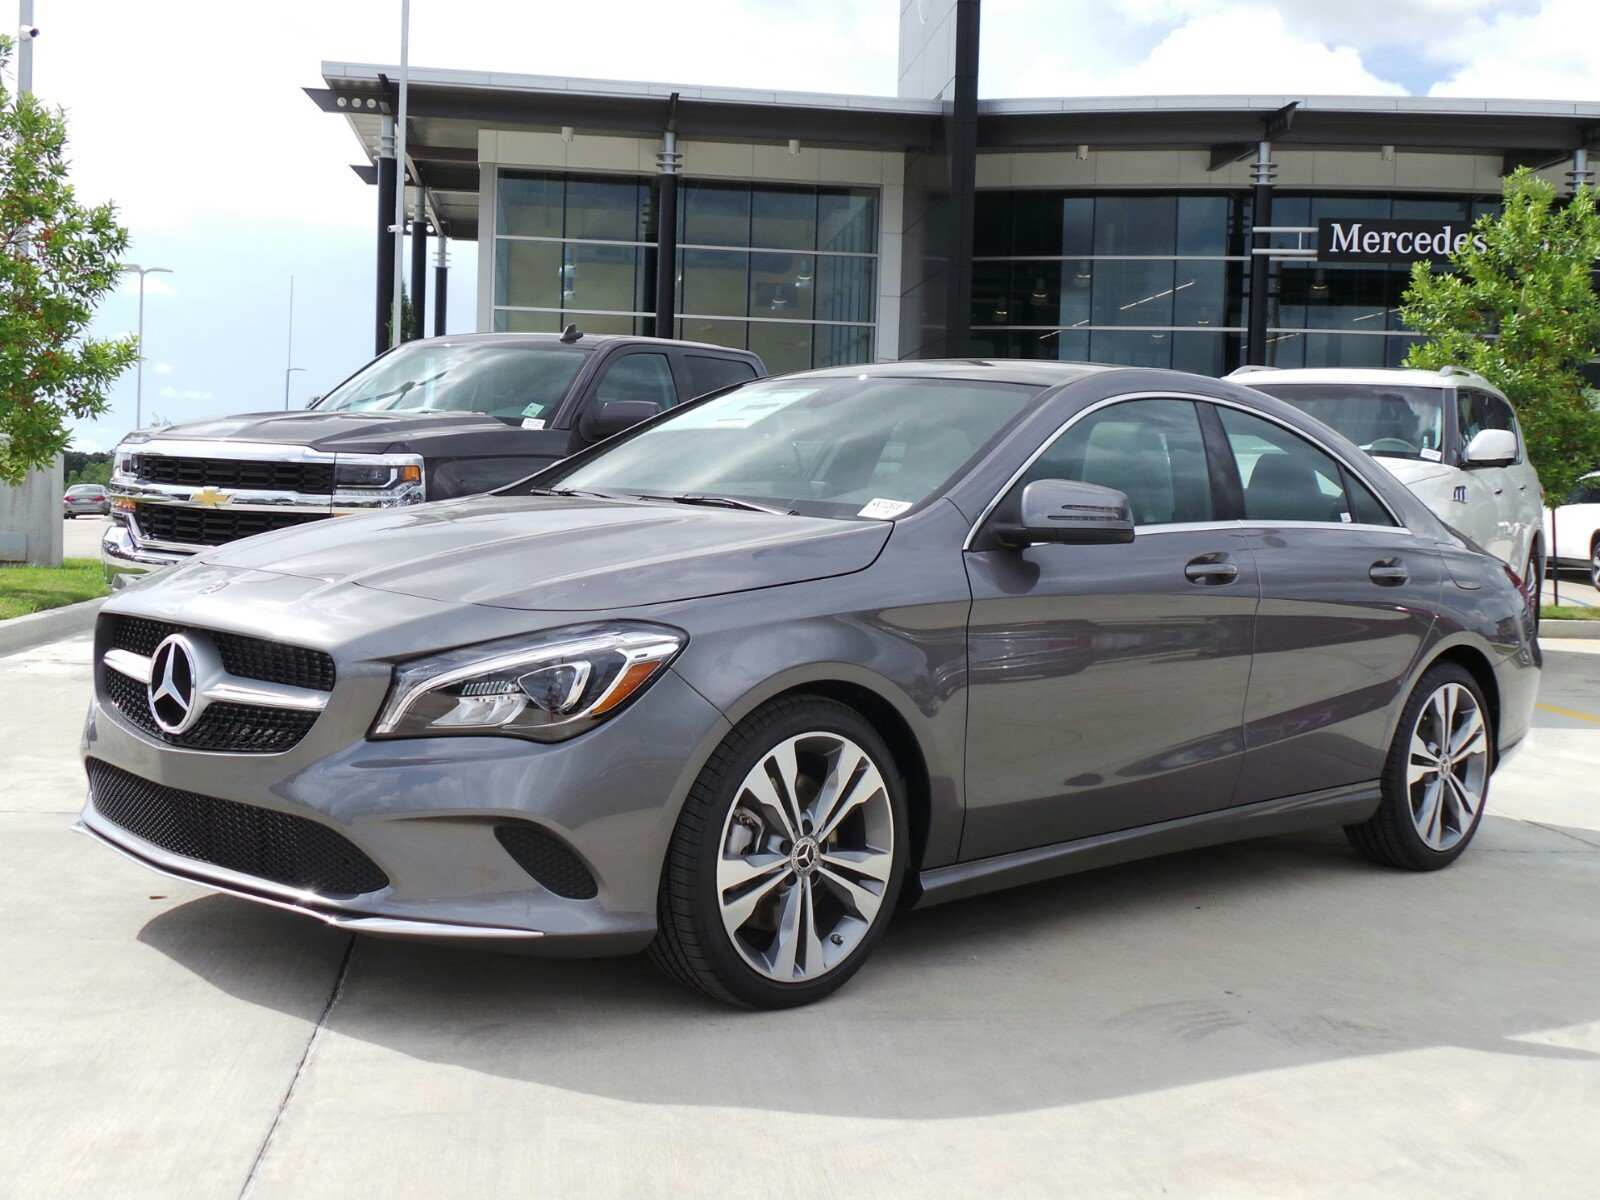 73 All New 2019 Mercedes CLA 250 Exterior And Interior